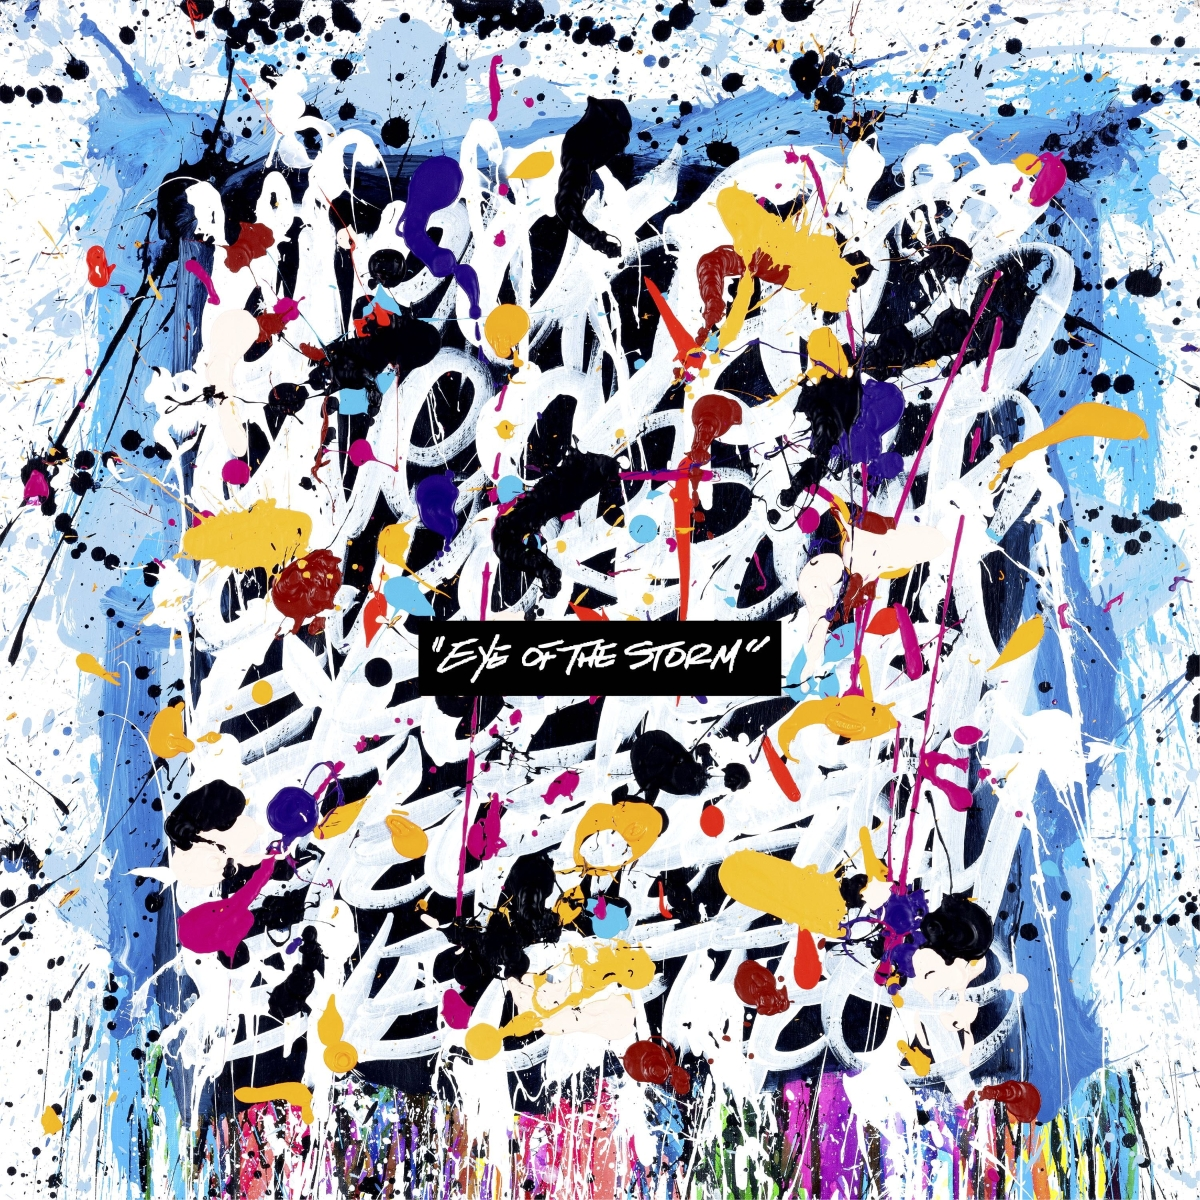 ONE OK ROCK Eye of the Storm (初回限定盤 CD+DVD)【特典なし】